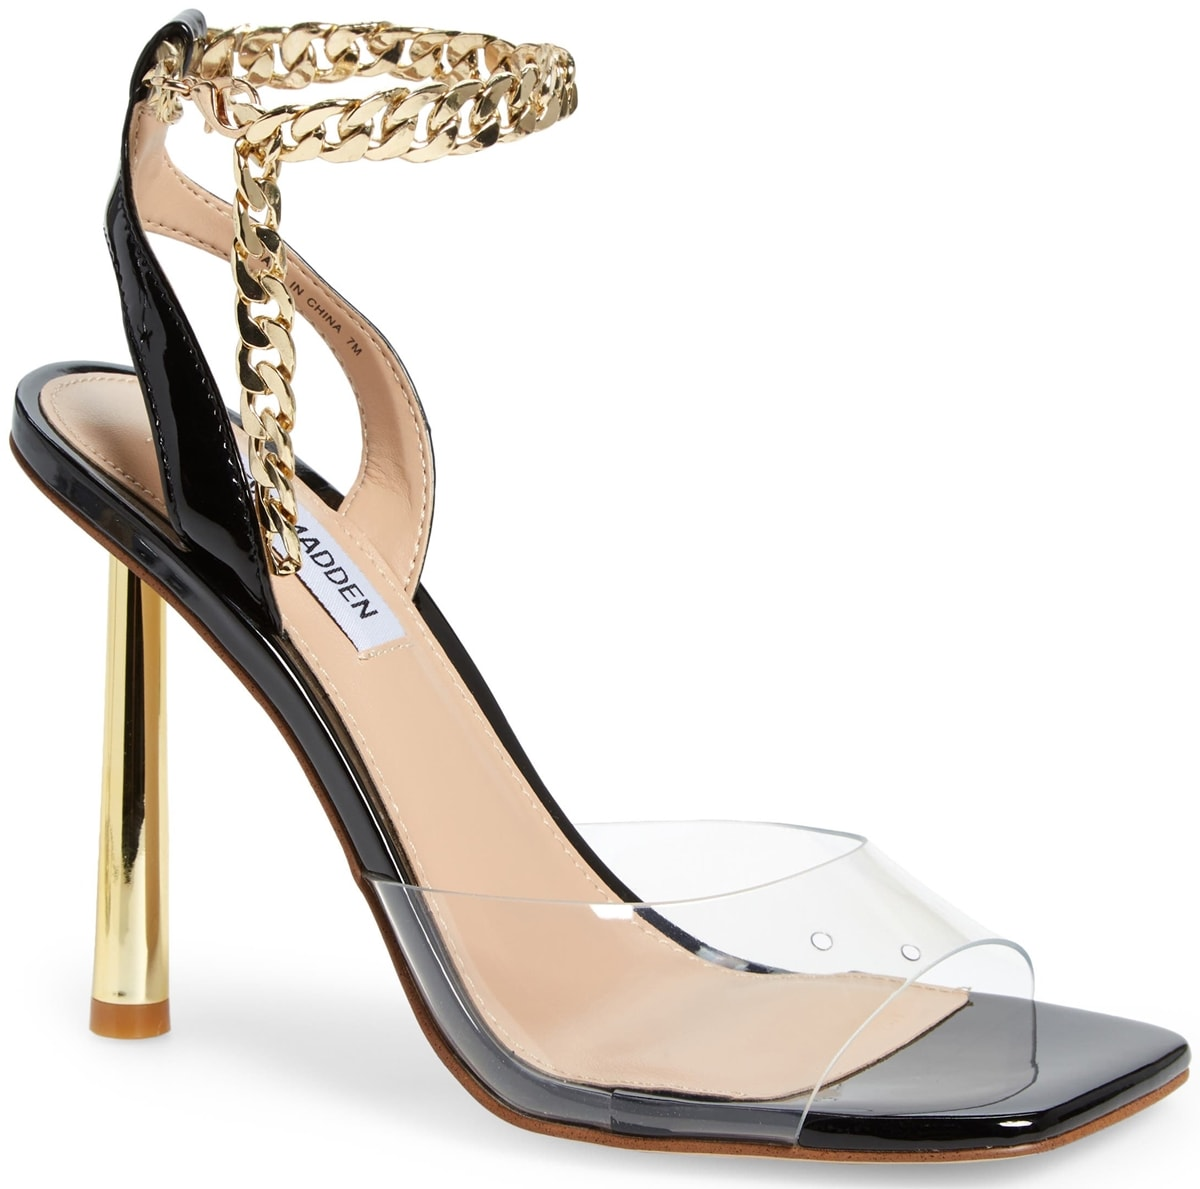 A chunky chain wraps around the ankle of a stunning black/clear sandal from Steve Madden set on a towering golden heel